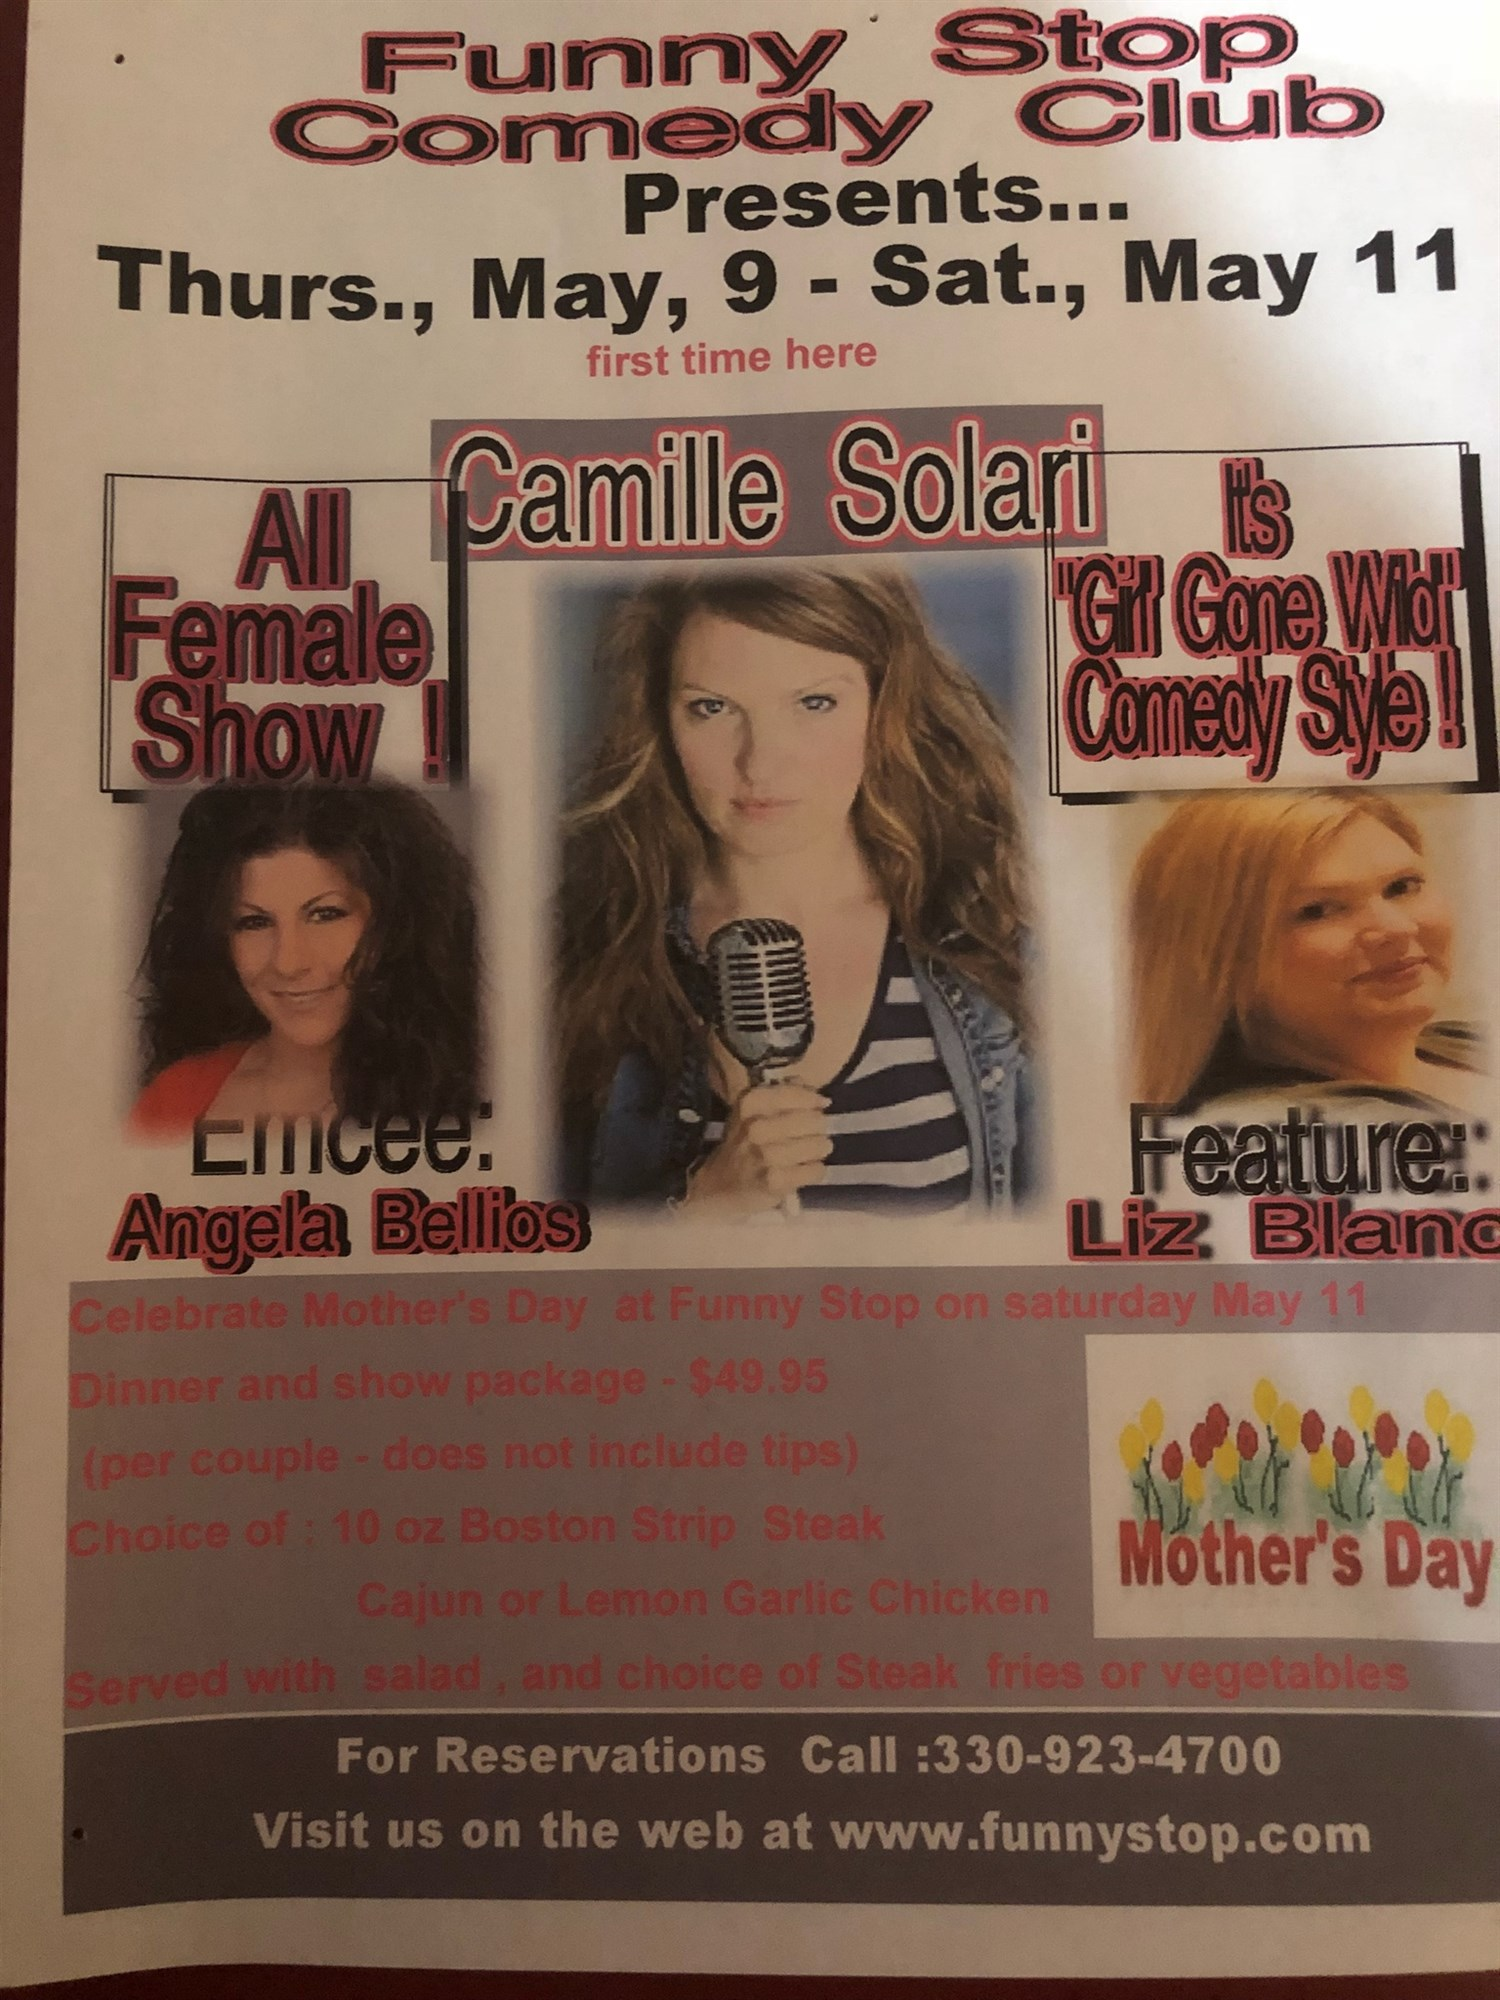 Camiile Solari / Liz Blanc 7:30 Show ALL Women Line Up Celebrating Mother's Day Wekend on May 10, 19:30@Funny Stop Comedy Club - Buy tickets and Get information on Funny Stop funnystop.online